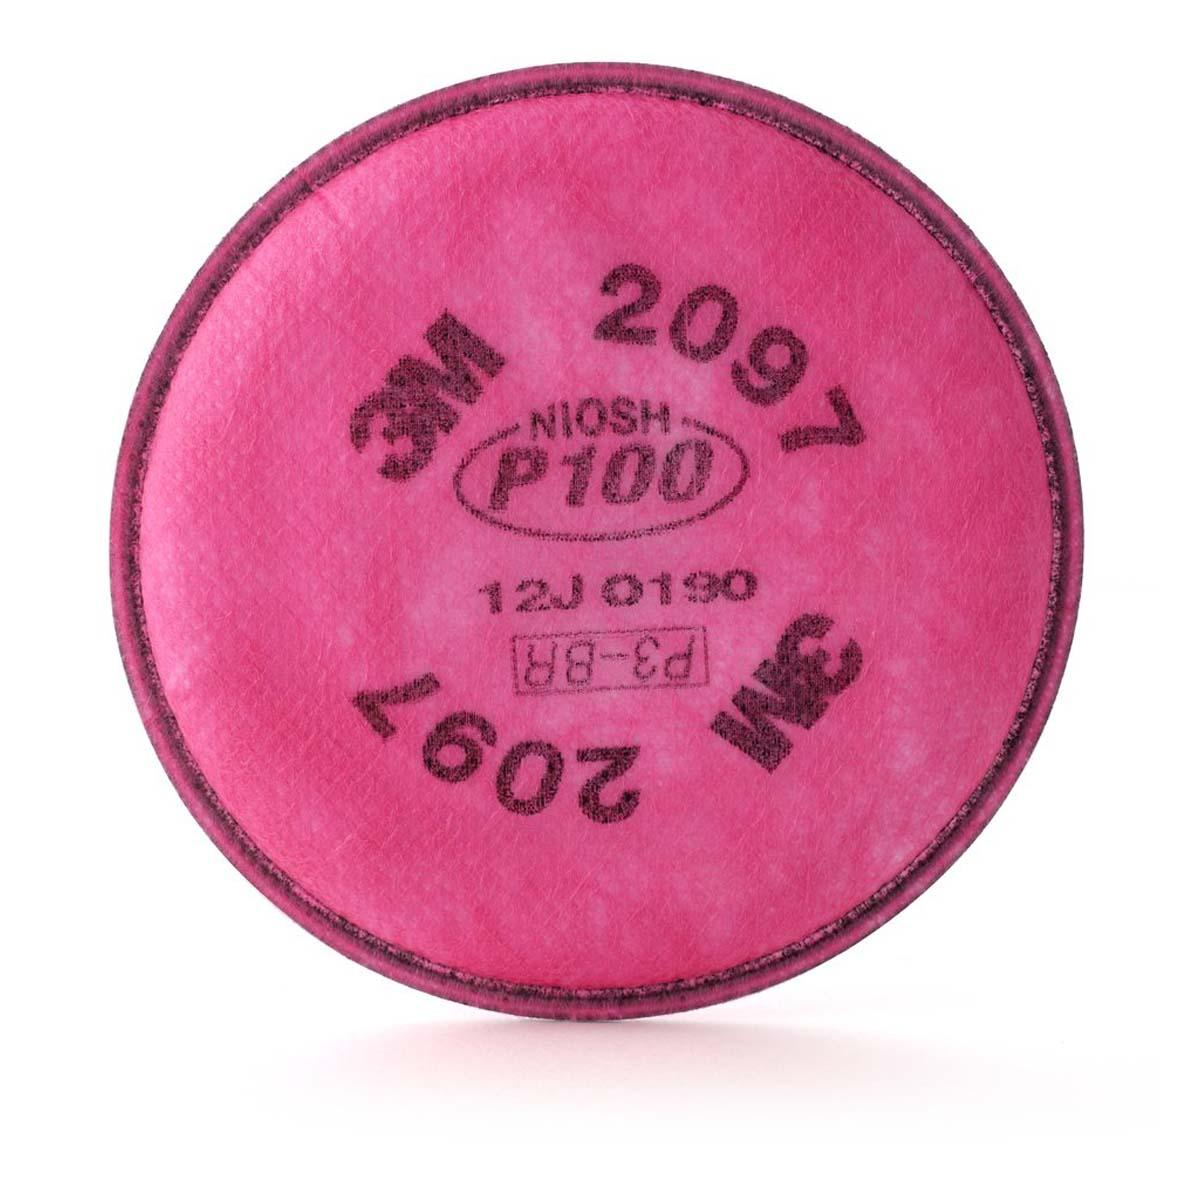 "3Mâ""¢ Particulate Filter 2097/07184(AAD), P100, with Nuisance Level Organic Vapor Relief"